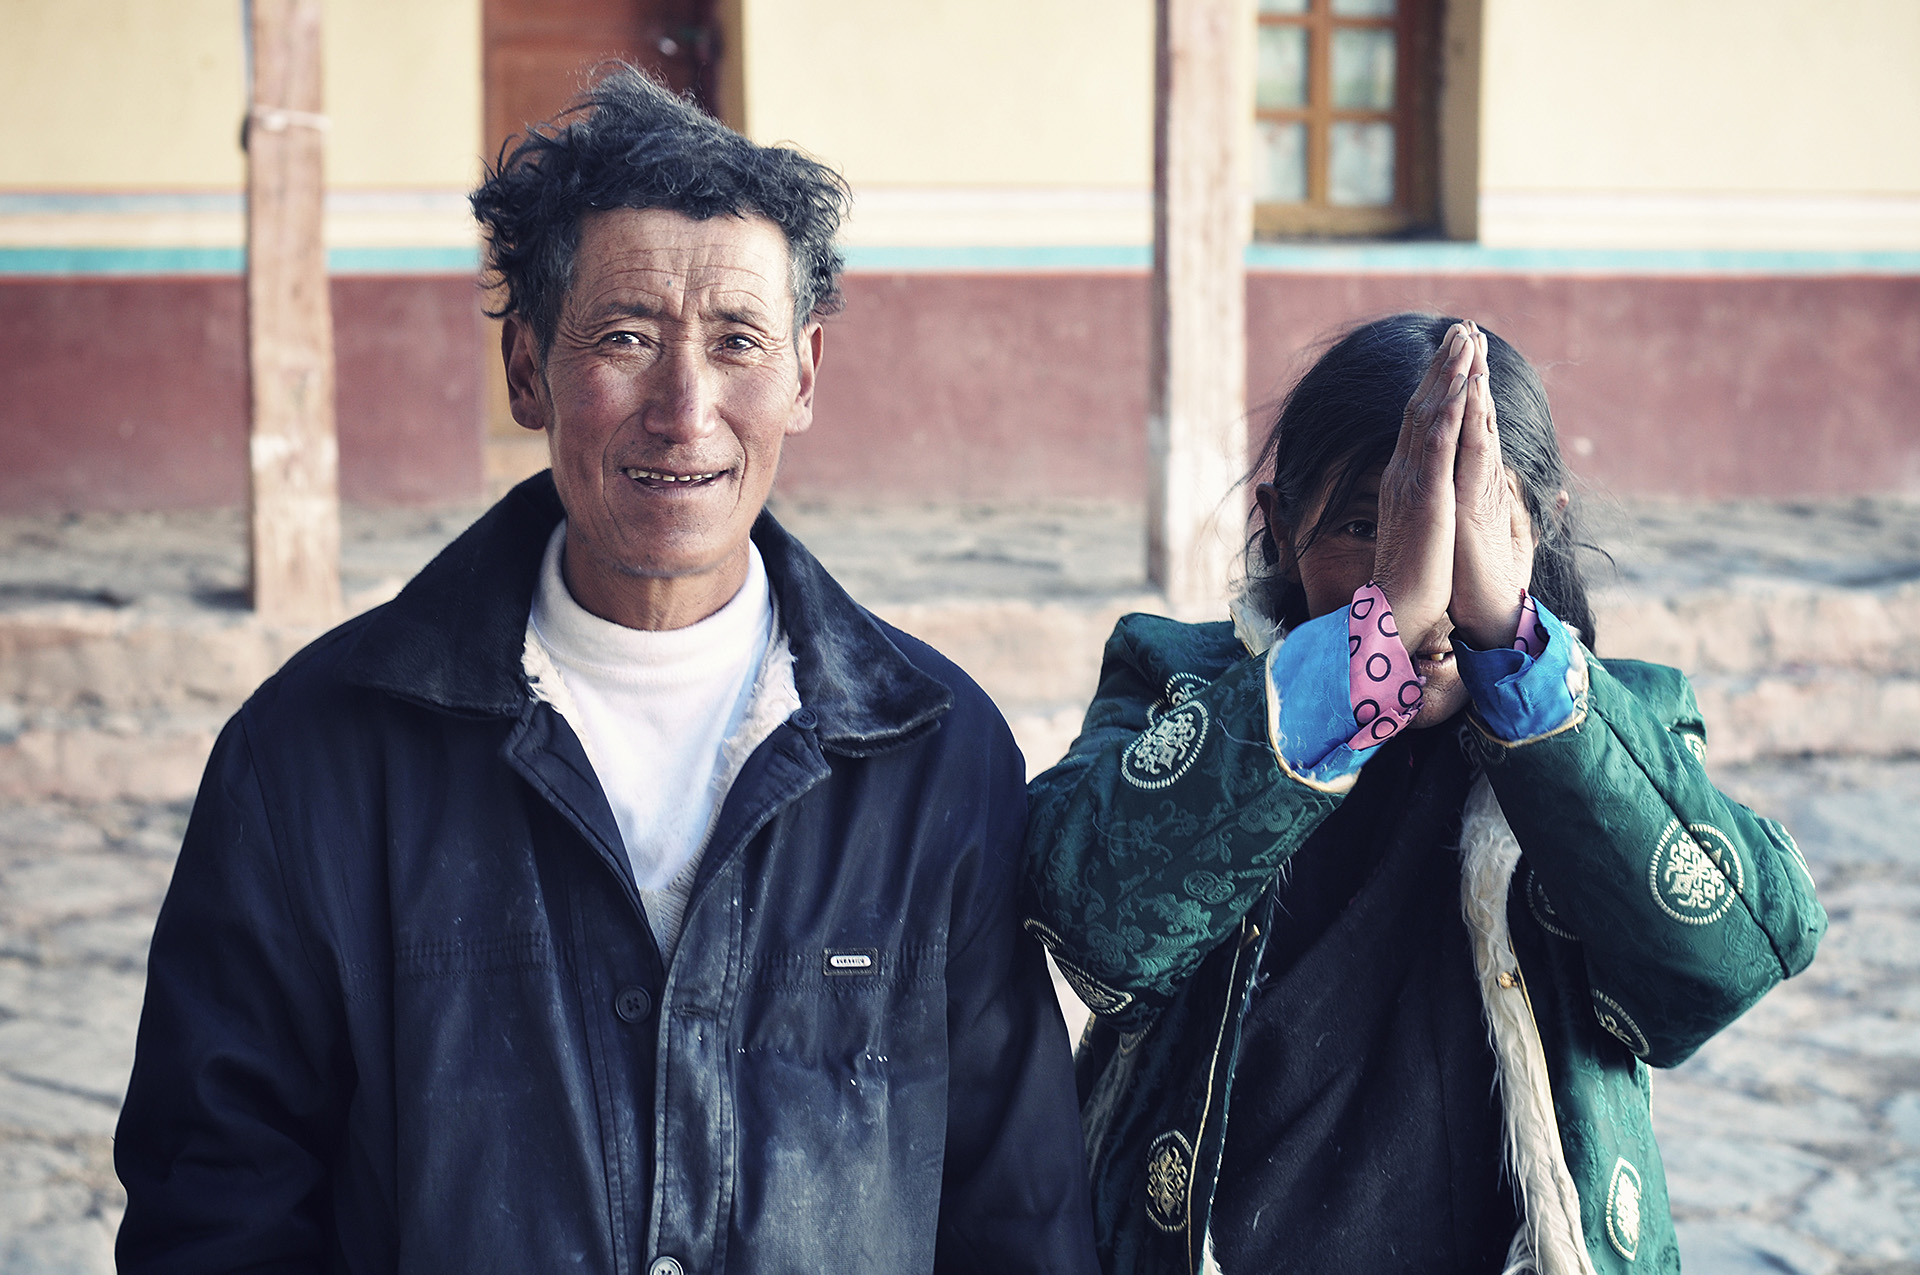 old-couple-pilgrims-tibet.jpg